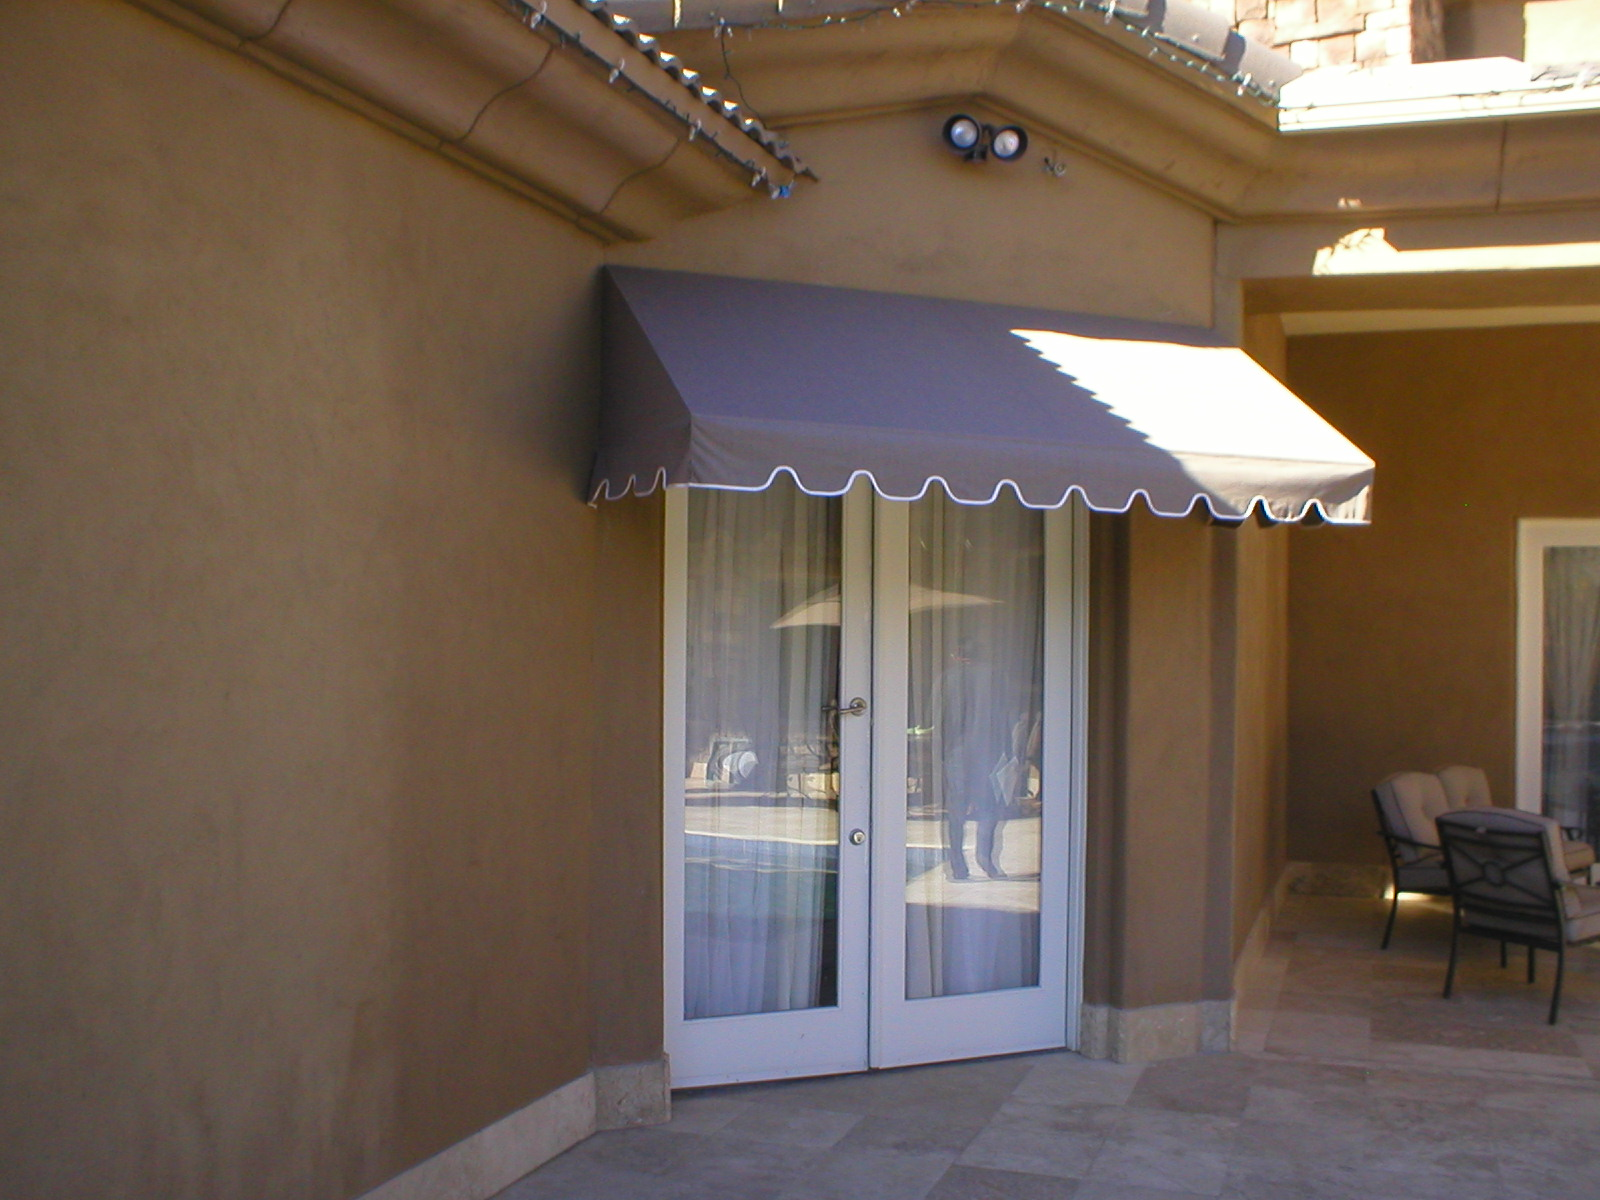 Awnings over a door